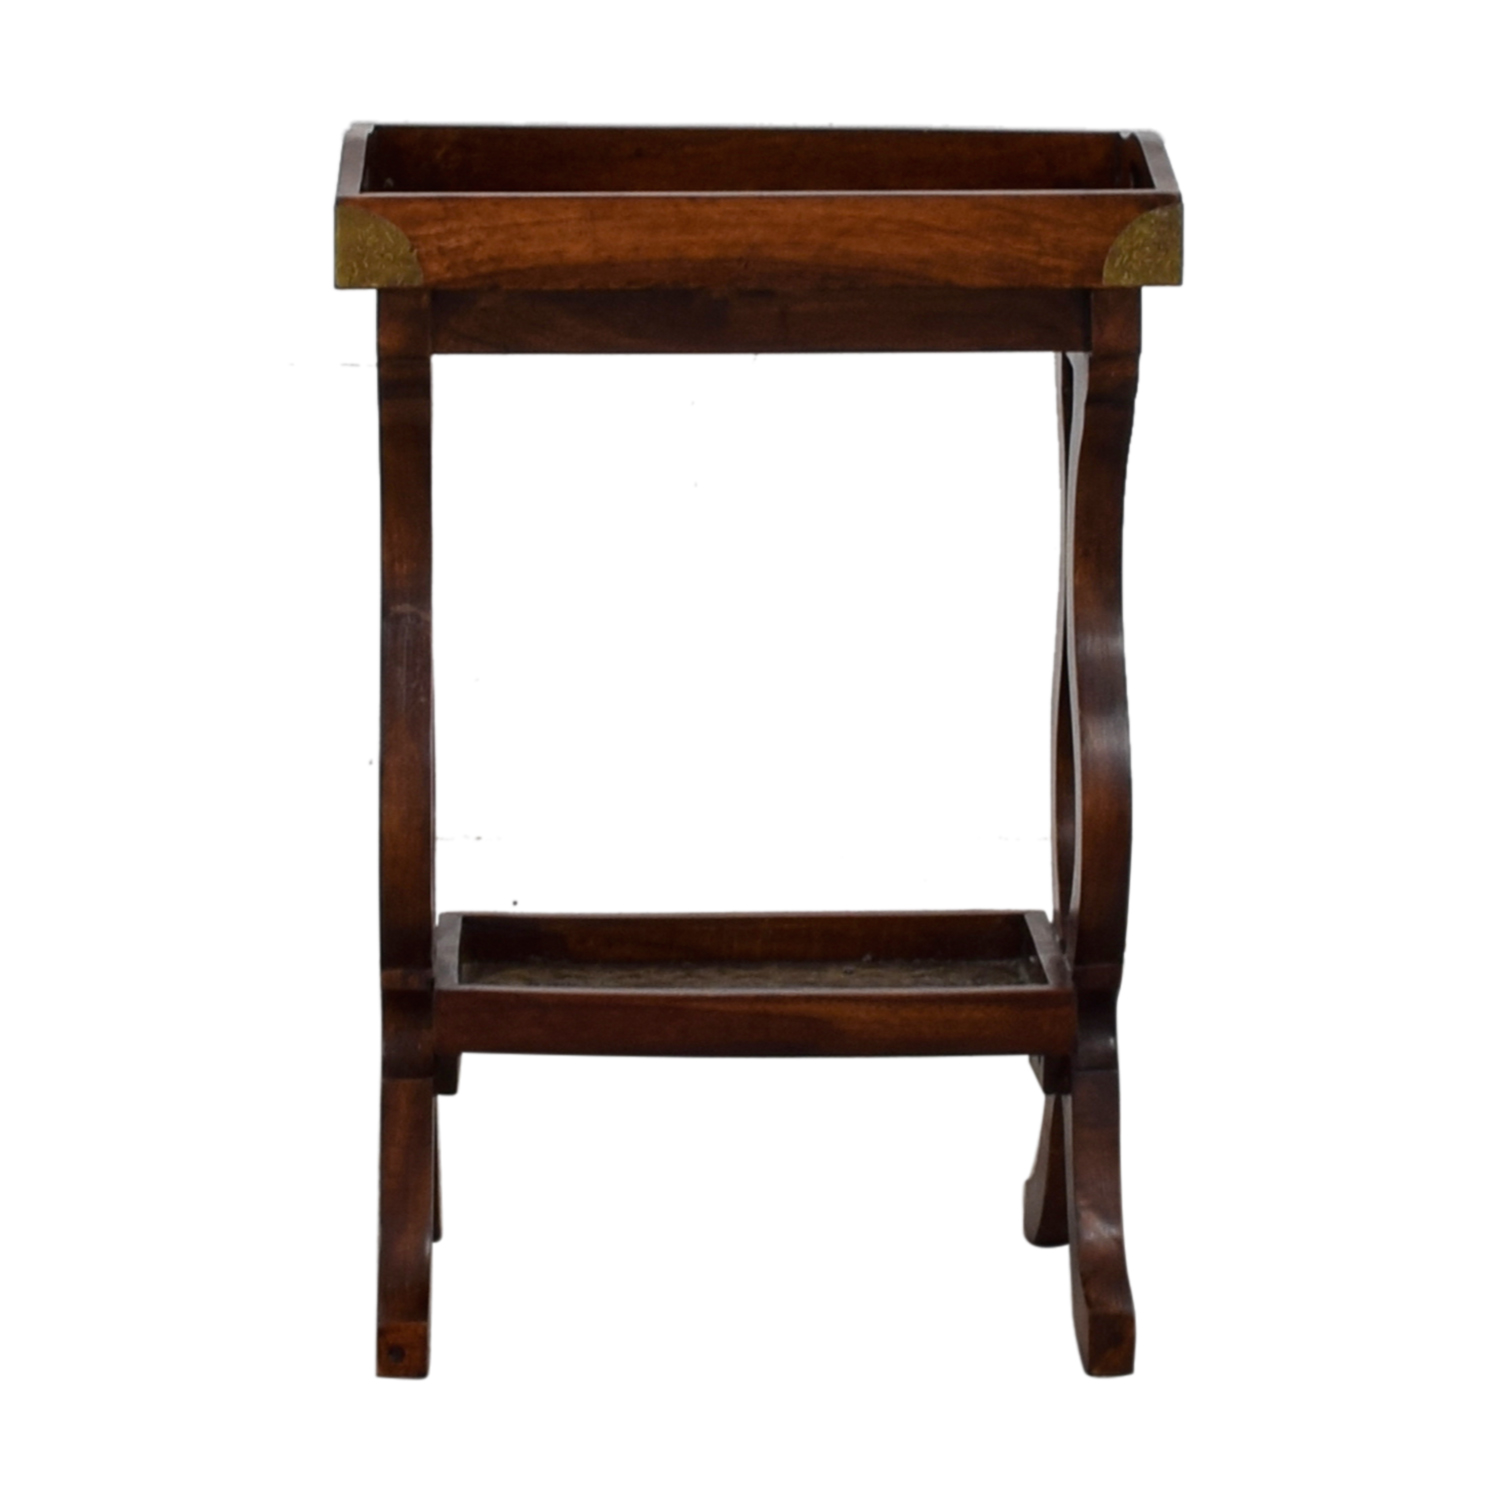 Pottery Barn Pottery Barn Wood Side Table discount